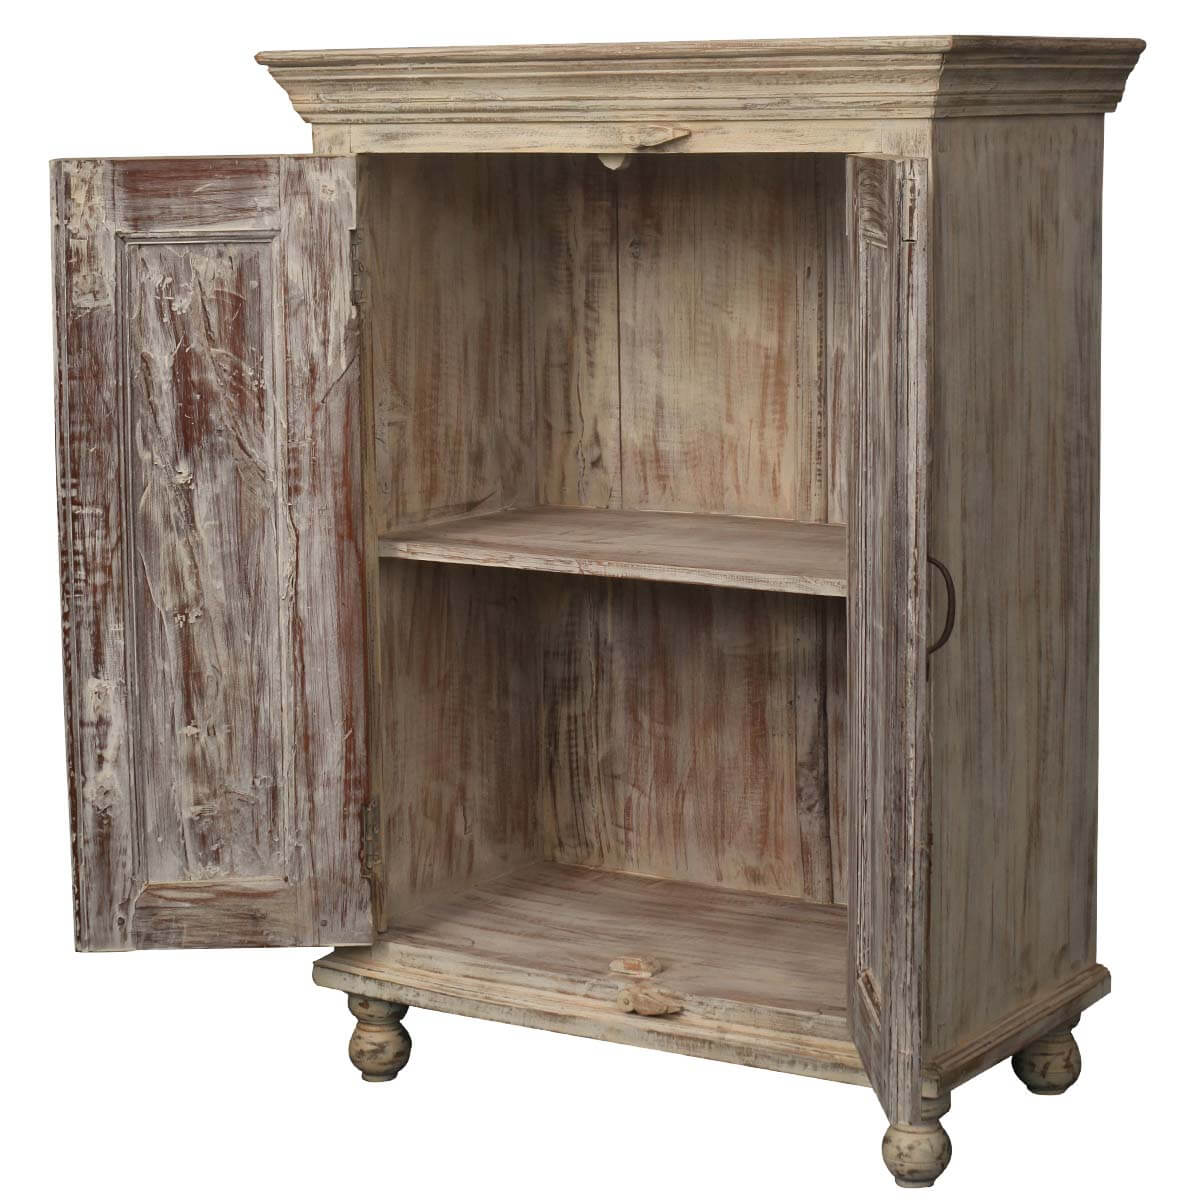 Marvelous photograph of Dusty White Rustic Reclaimed Wood 2 Shelf Buffet Storage Cabinet with #B48317 color and 1200x1200 pixels